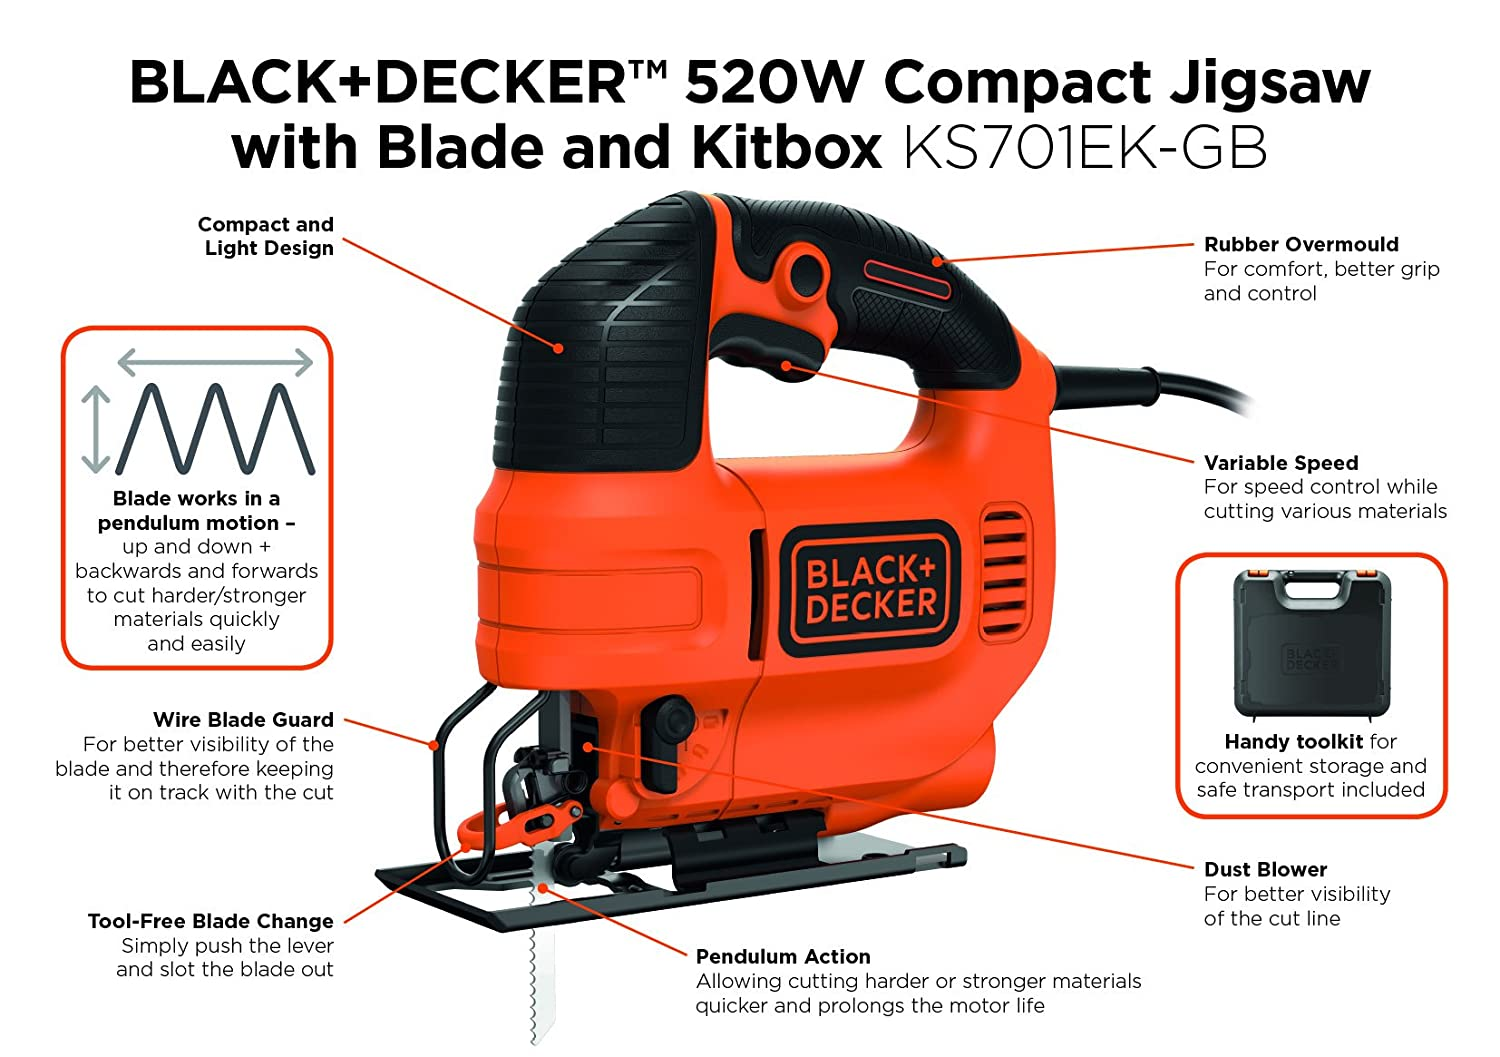 Blackdecker ks701ek gb compact jigsaw with blade 520 w amazon blackdecker ks701ek gb compact jigsaw with blade 520 w amazon diy tools greentooth Gallery